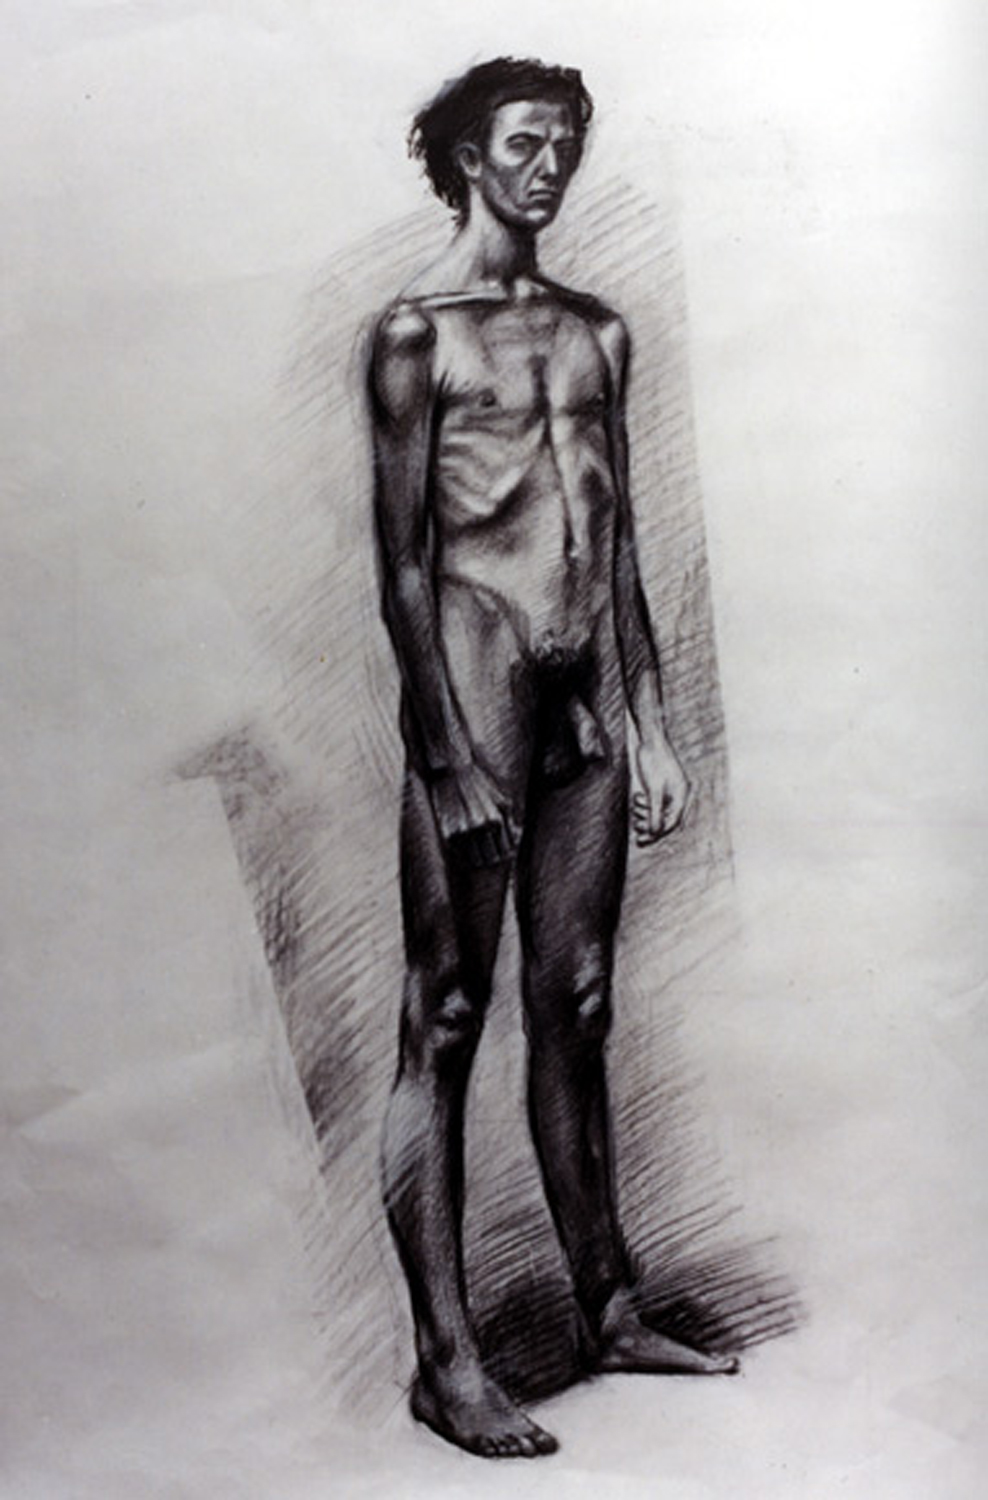 Nude Self Portrait (as a Teenager)